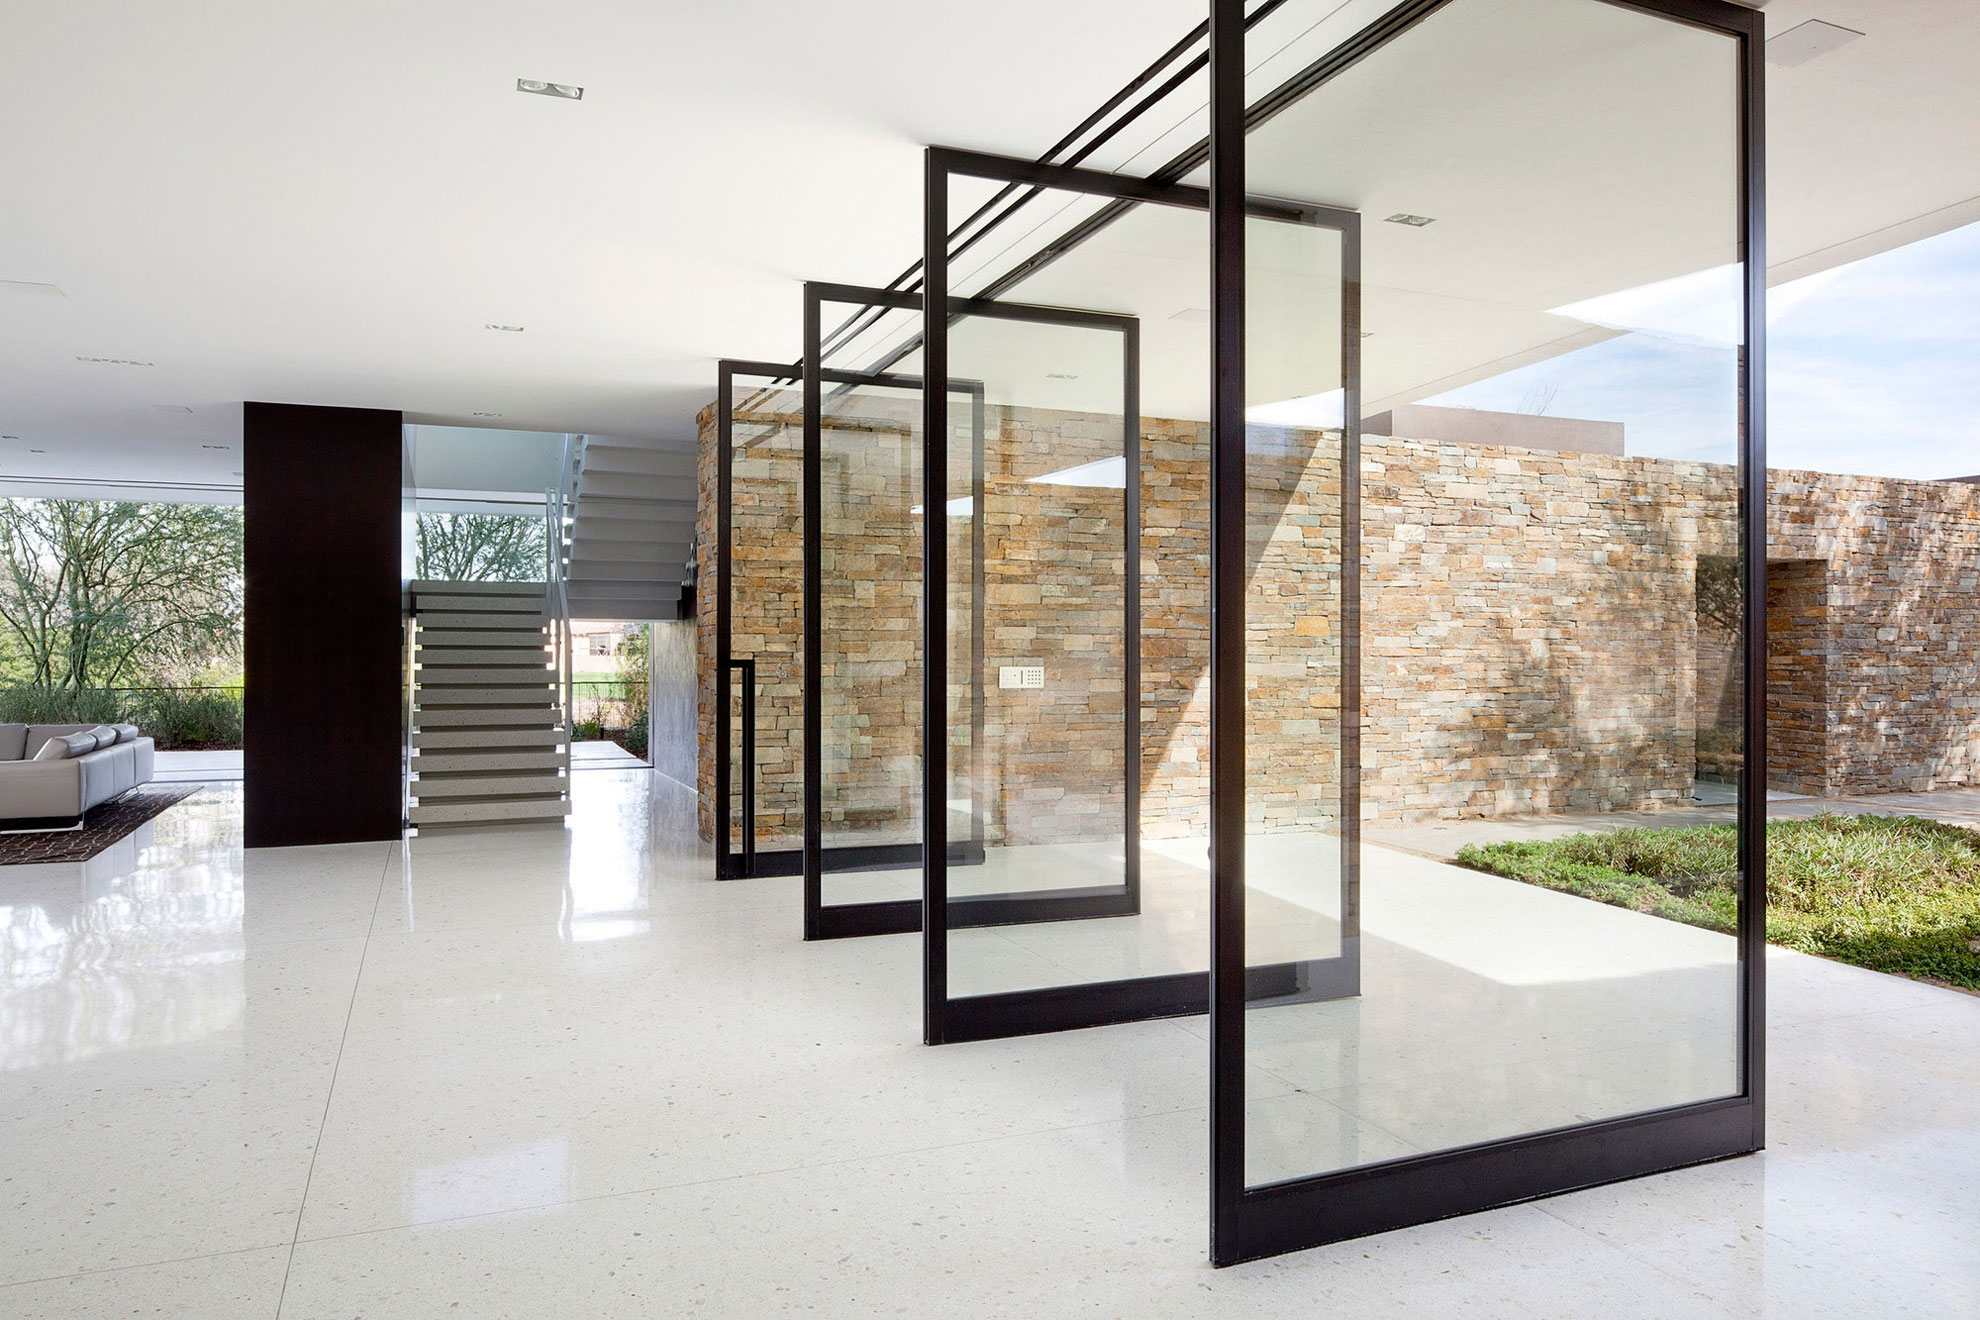 Wall To Wall Sliding Glass DoorsWall To Wall Sliding Glass Doors